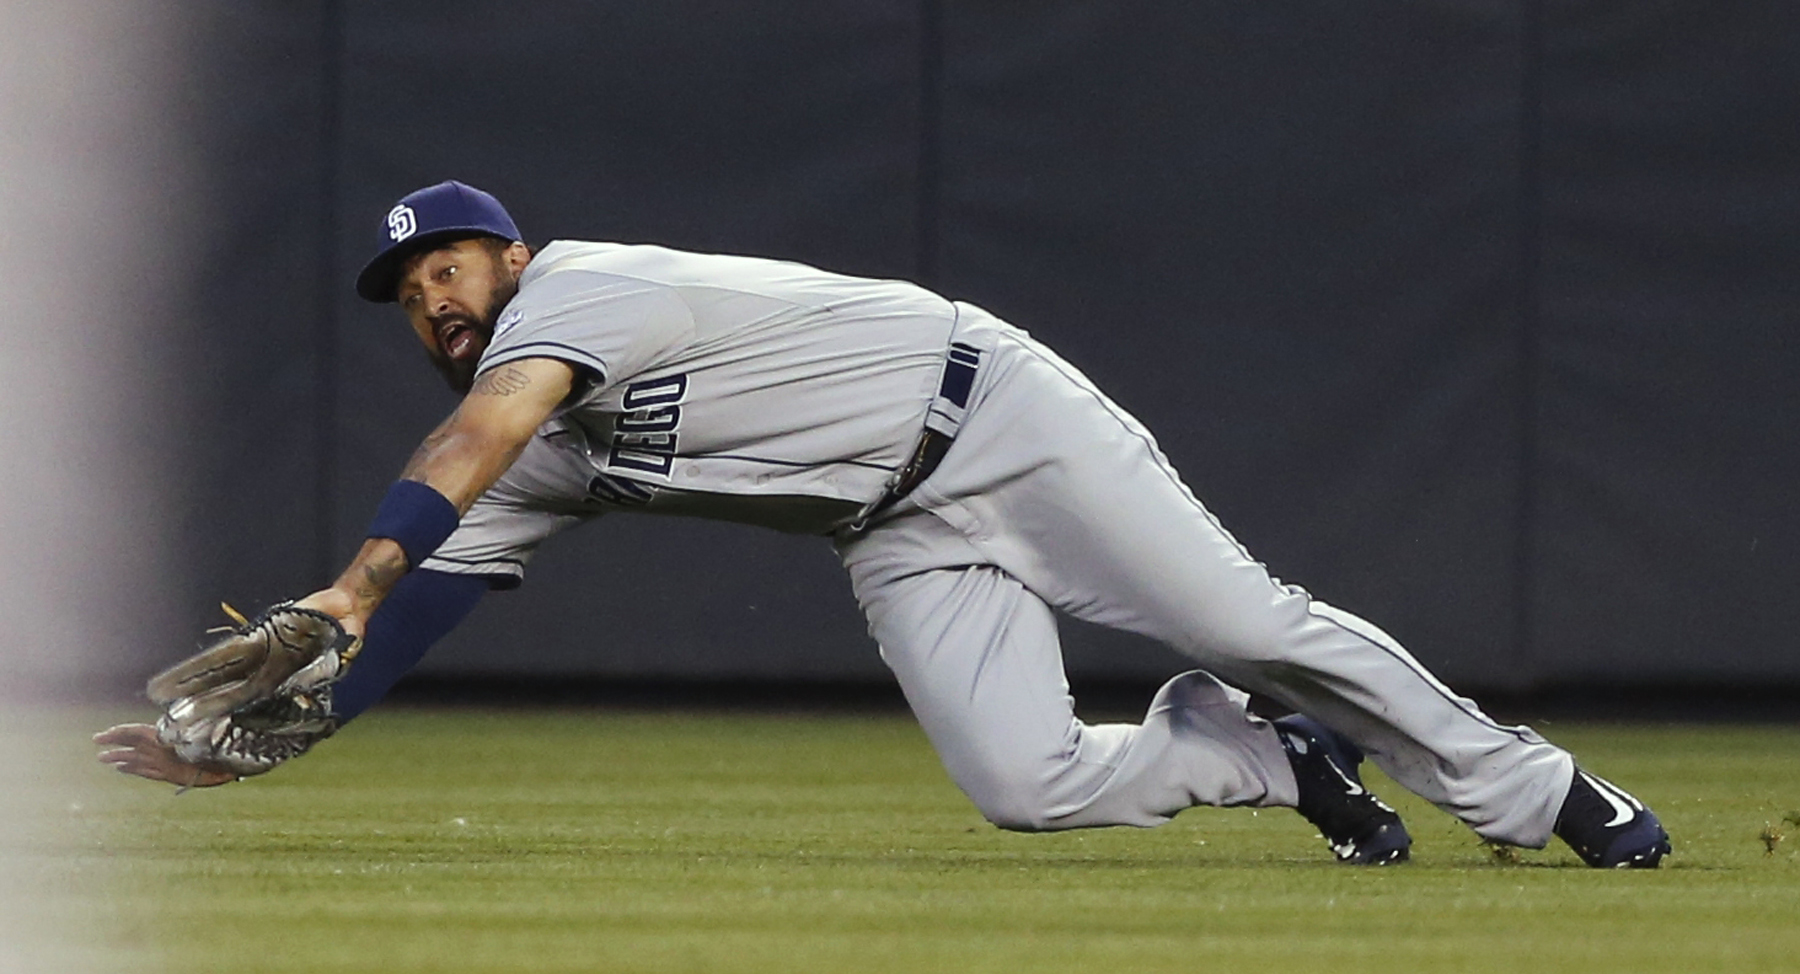 San Diego Padres right fielder Matt Kemp dives to catch a pop fly by Colorado Rockies' Carlos Gonzalez to end the bottom of the first inning of a baseball game Friday, Sept. 18, 2015, in Denver. (AP Photo/David Zalubowski)